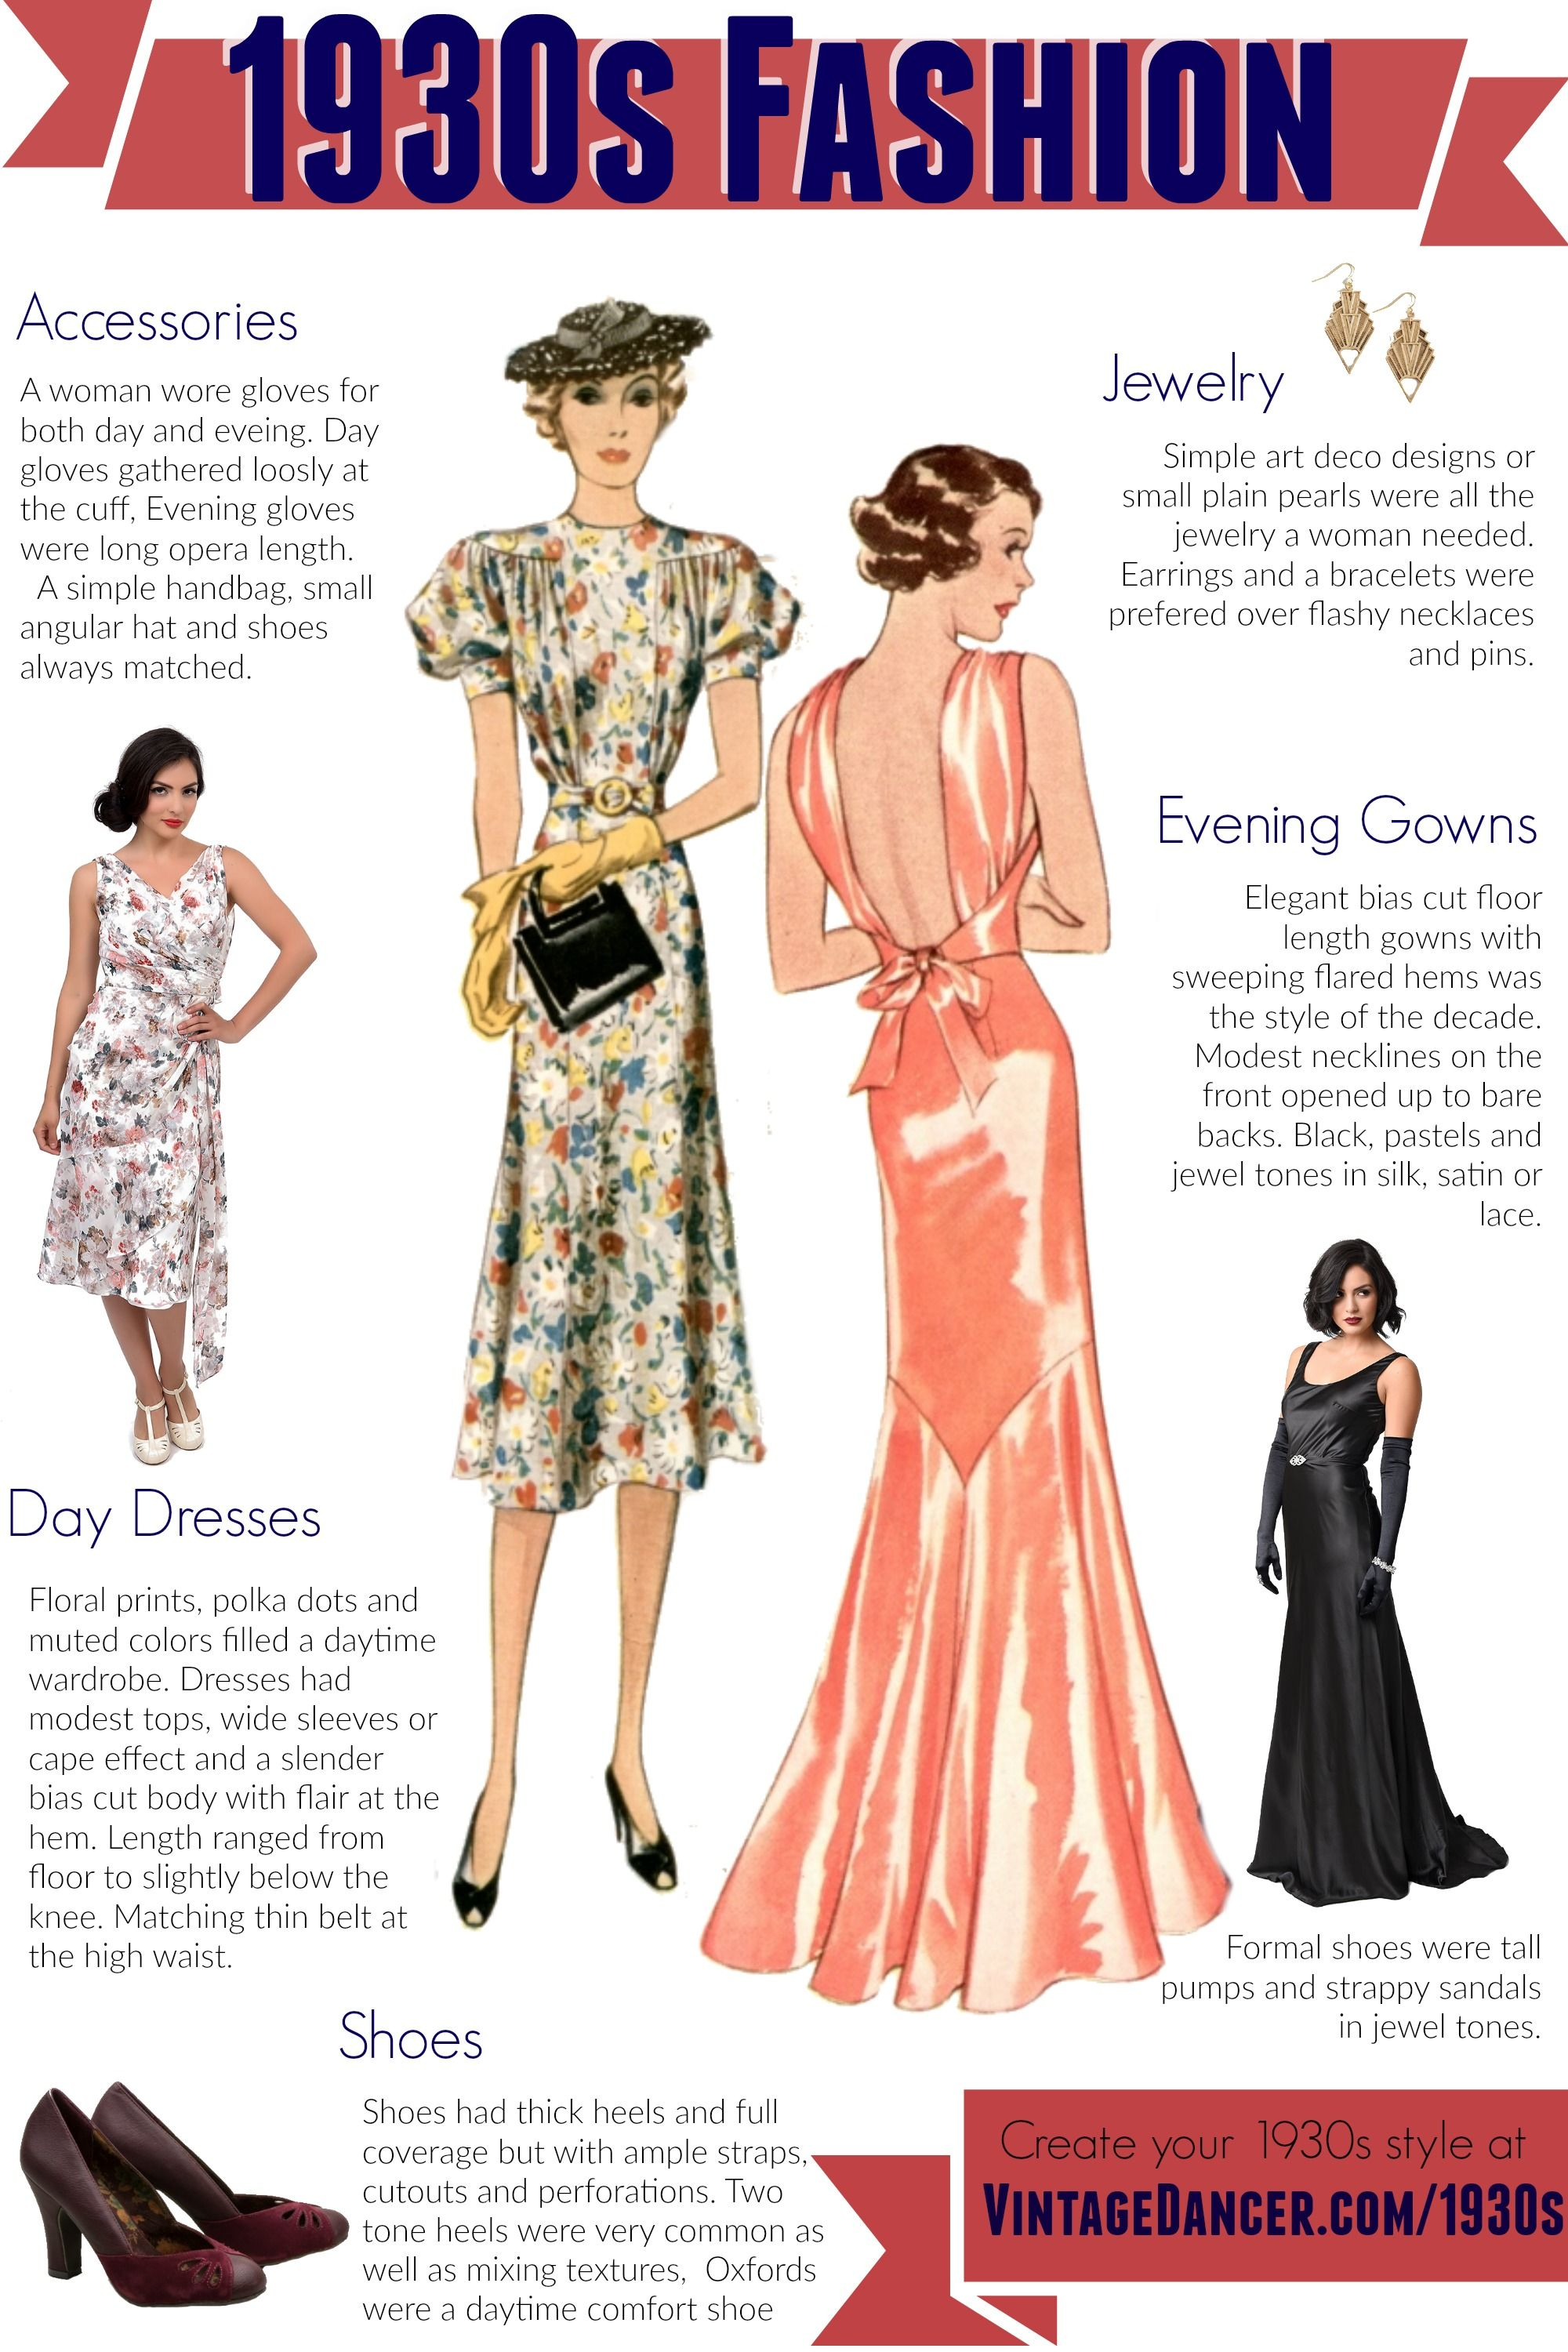 1930s Style Clothing, Shoes, Accessories For Sale